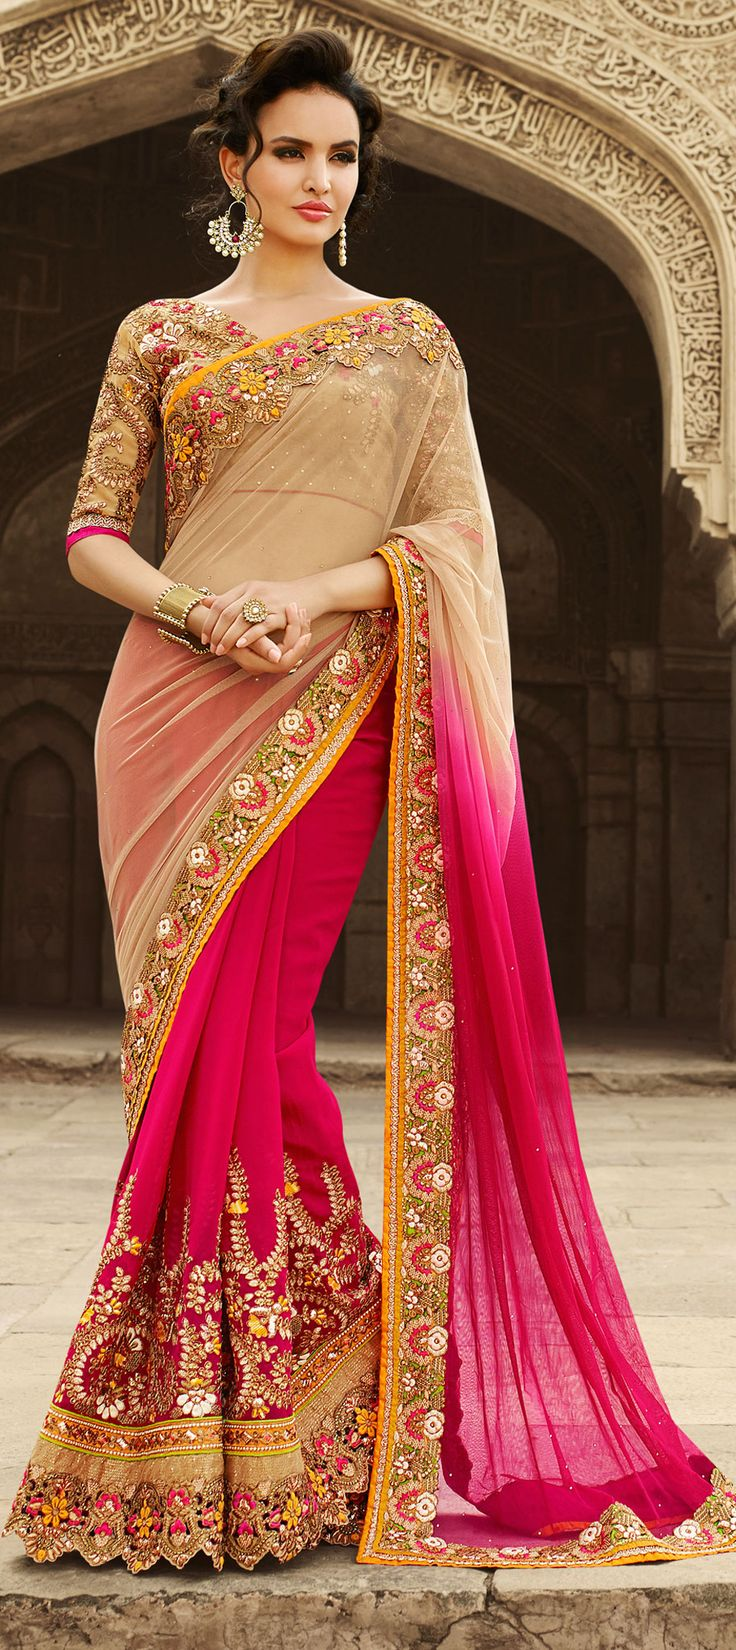 Western dresses made from sarees for wedding